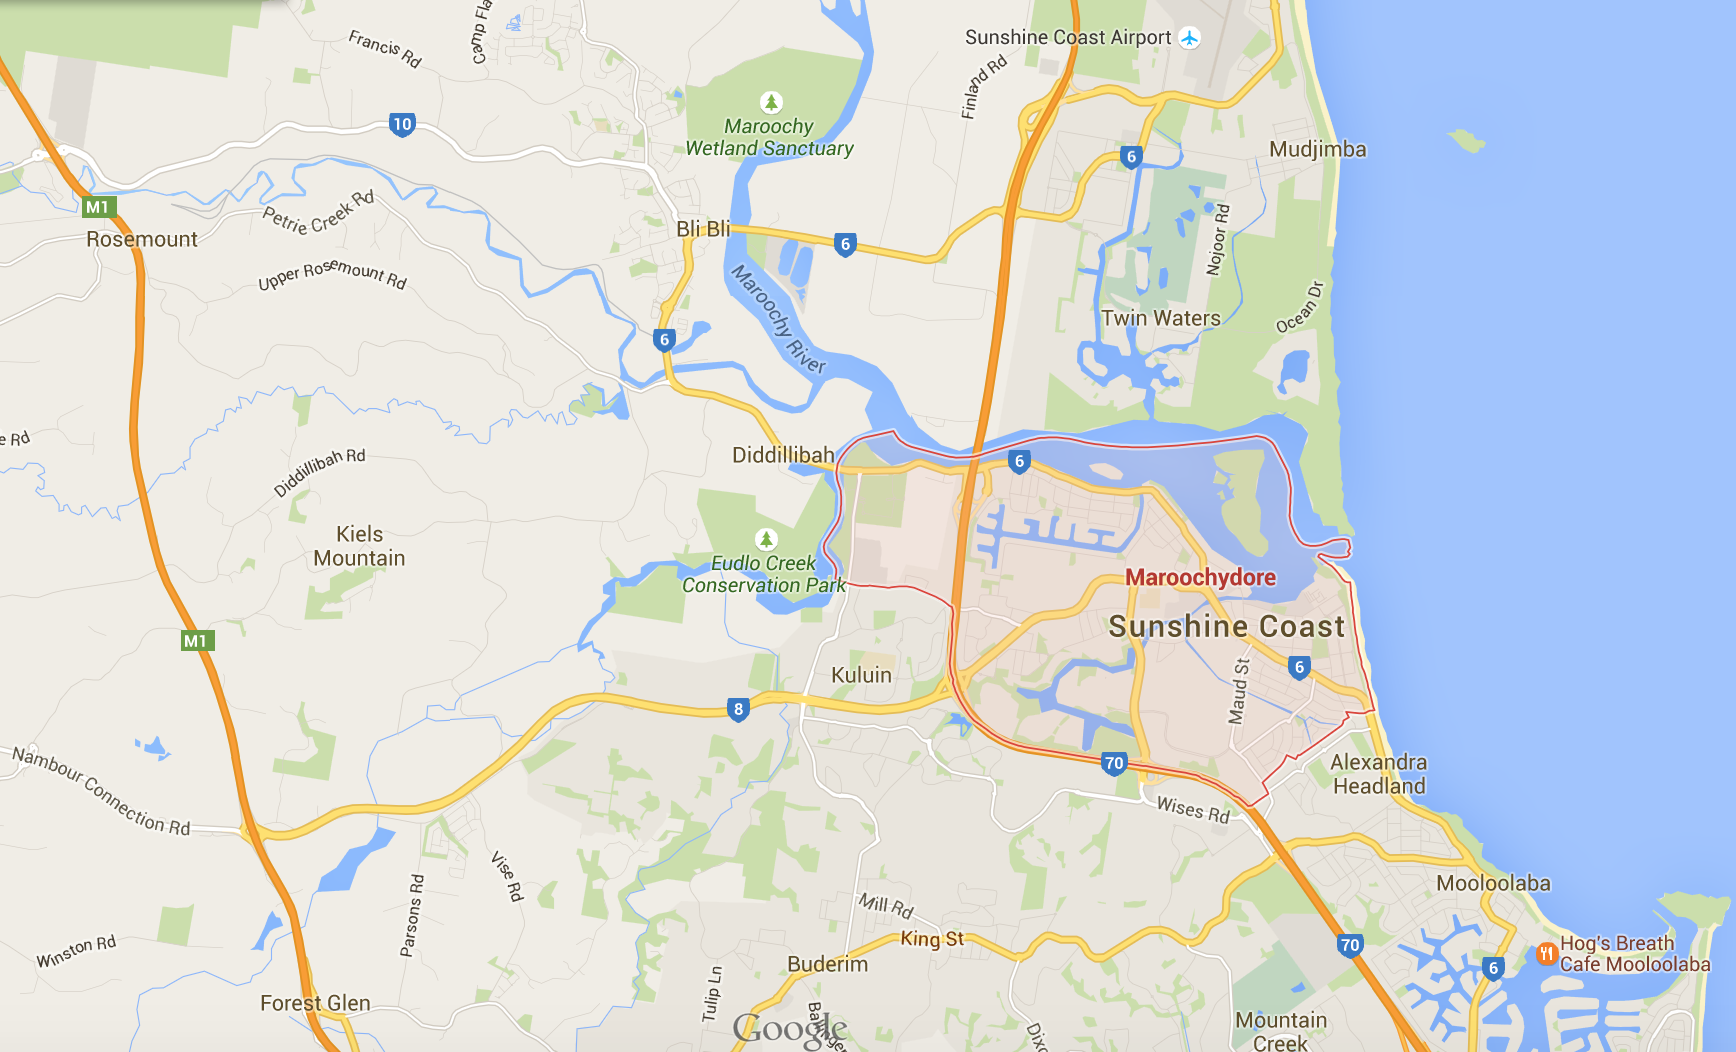 Where would you like your Maroochydore lawn mowing? Google Map 2015